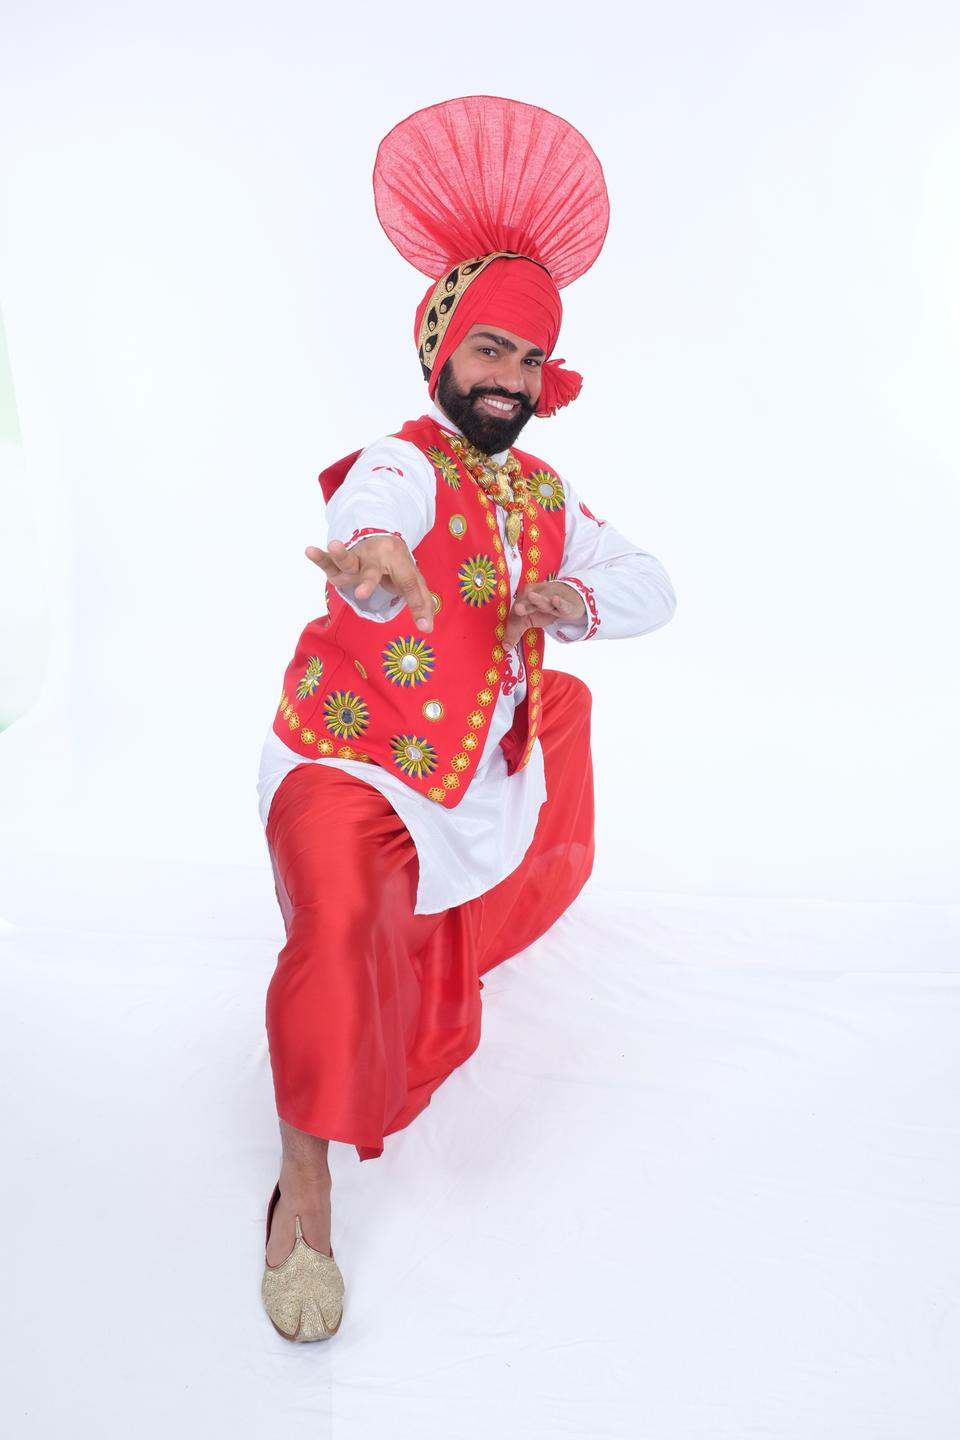 Hardeep Sahota is the founder of World Bhangra Day. He has also developed a visual dictionary of movement, using dance and photography to explore the rich history of Bhangra.